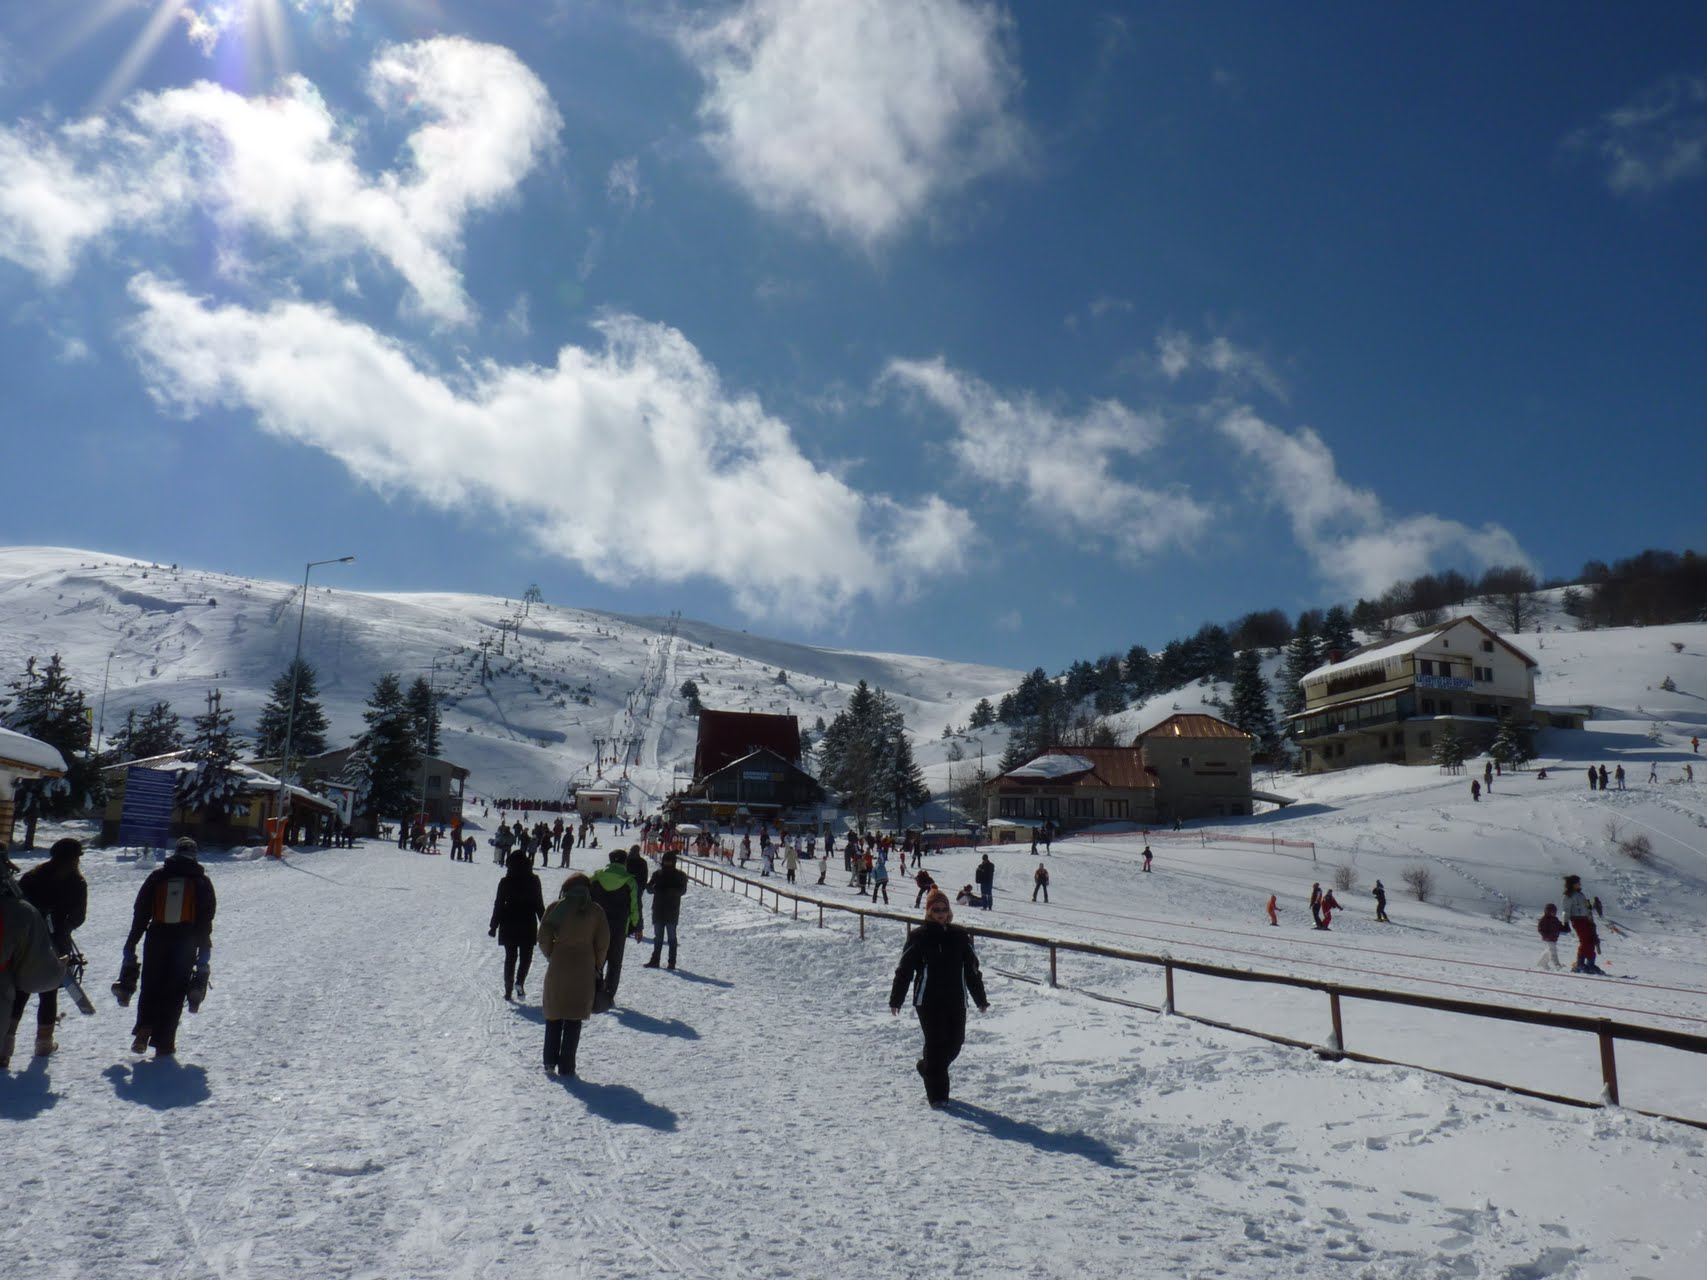 Seli,  winter sports resort